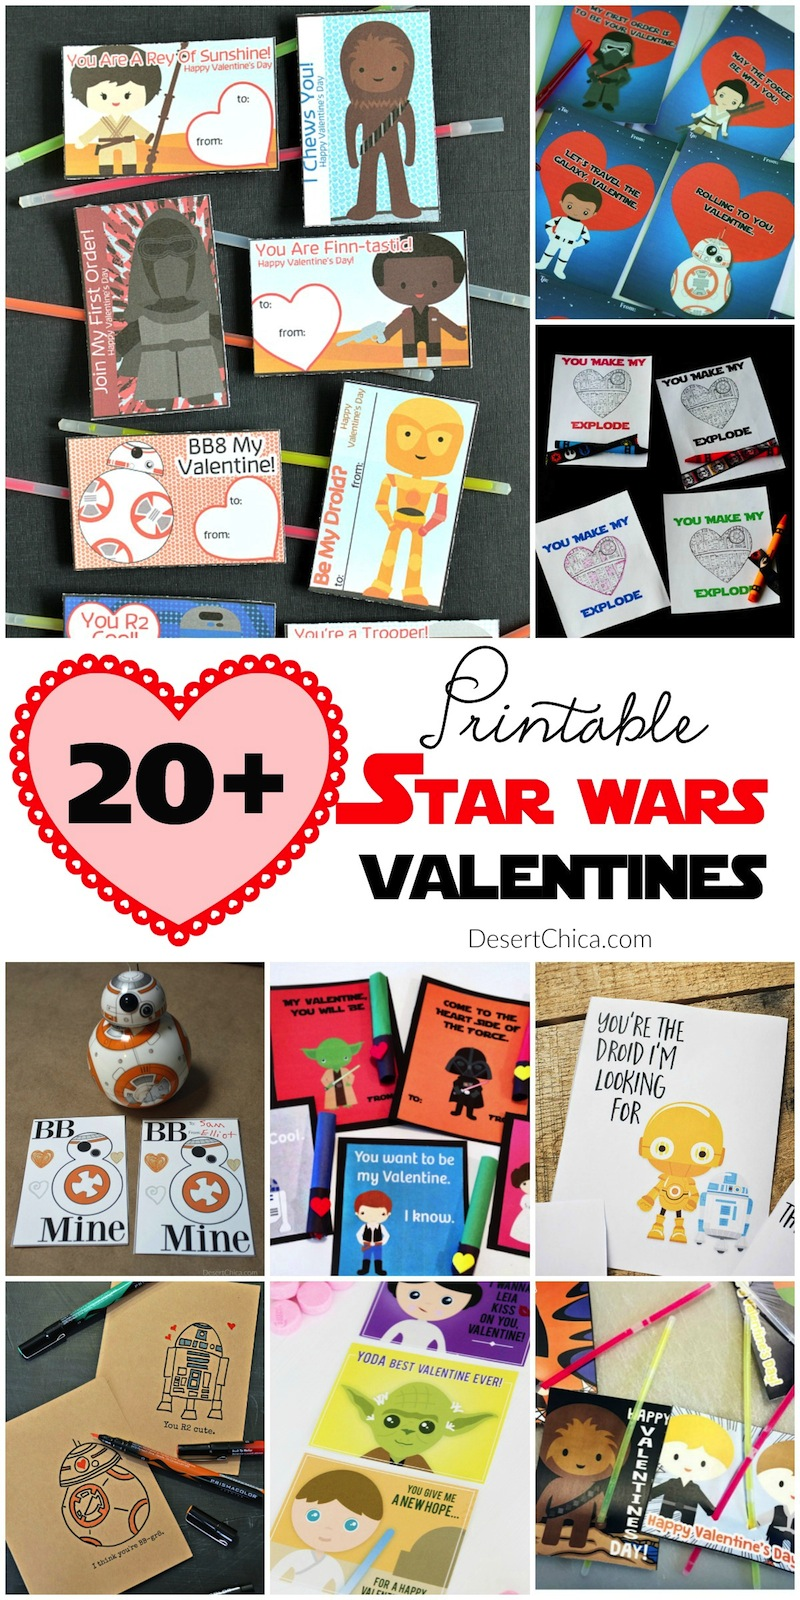 Printable Star Wars Valentines Round Up